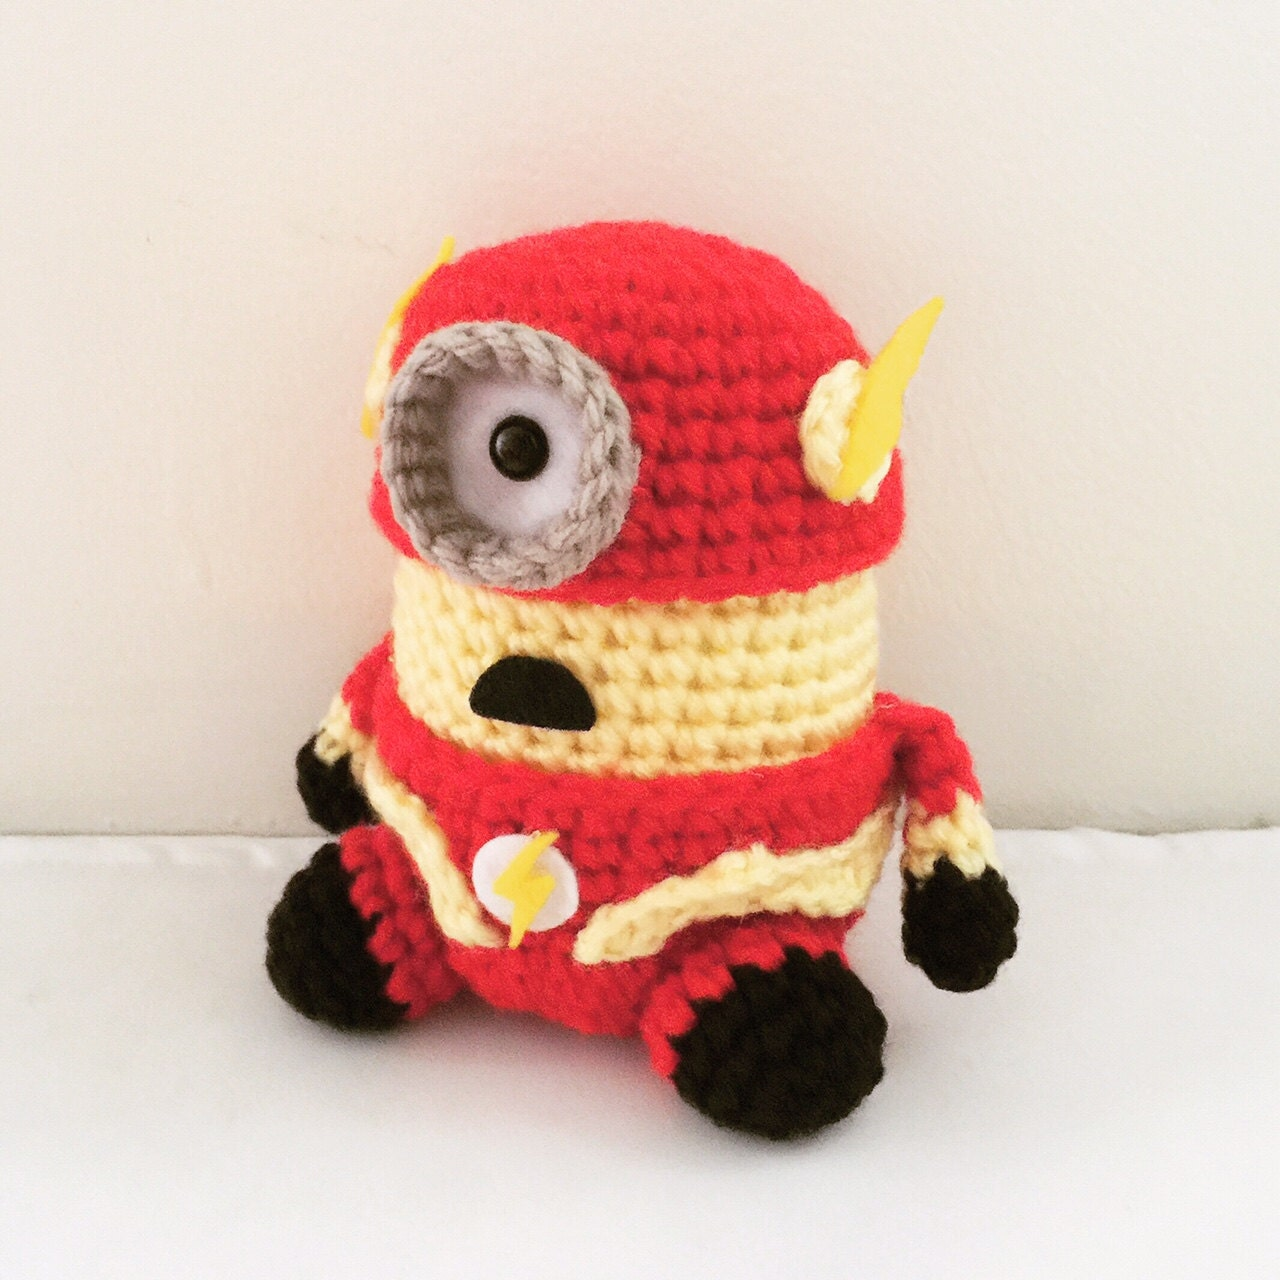 Free Crochet Pattern For Minion Toy : The Flash Minion PDF Pattern Crochet for Amigurumi Doll Plush